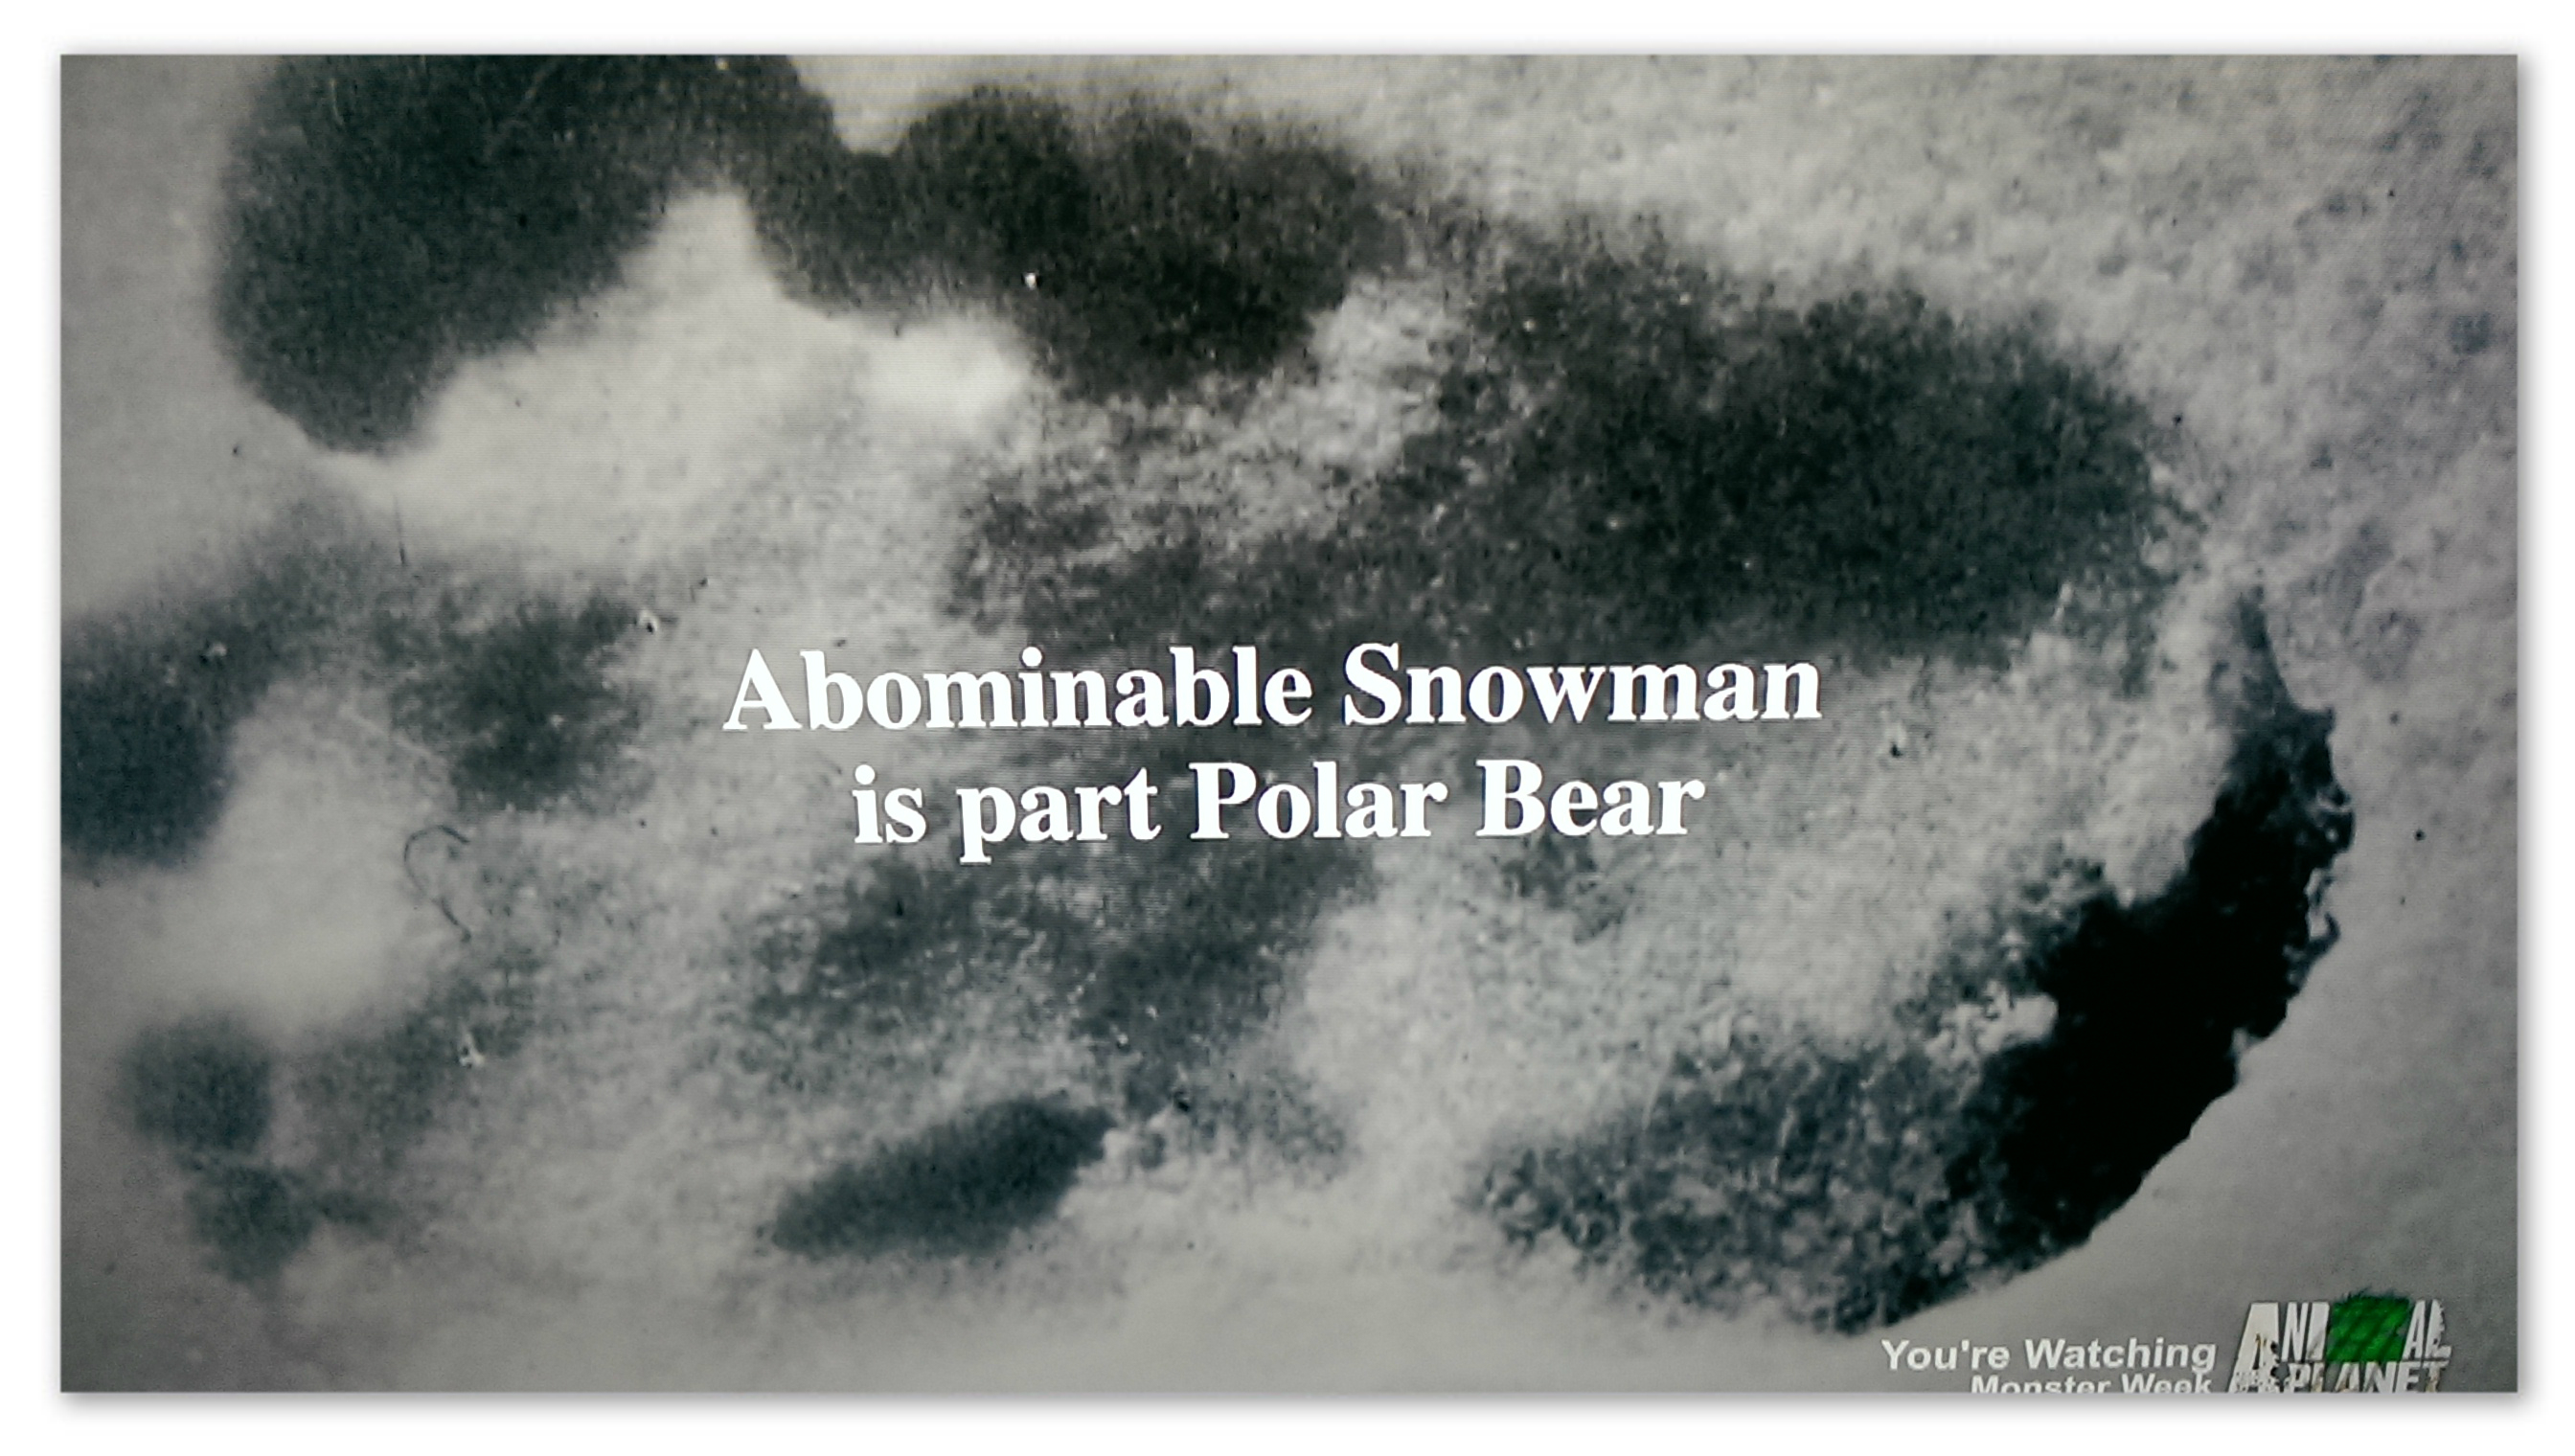 """Image of a footprint with text """"Abominable snowman is part polar bear"""""""